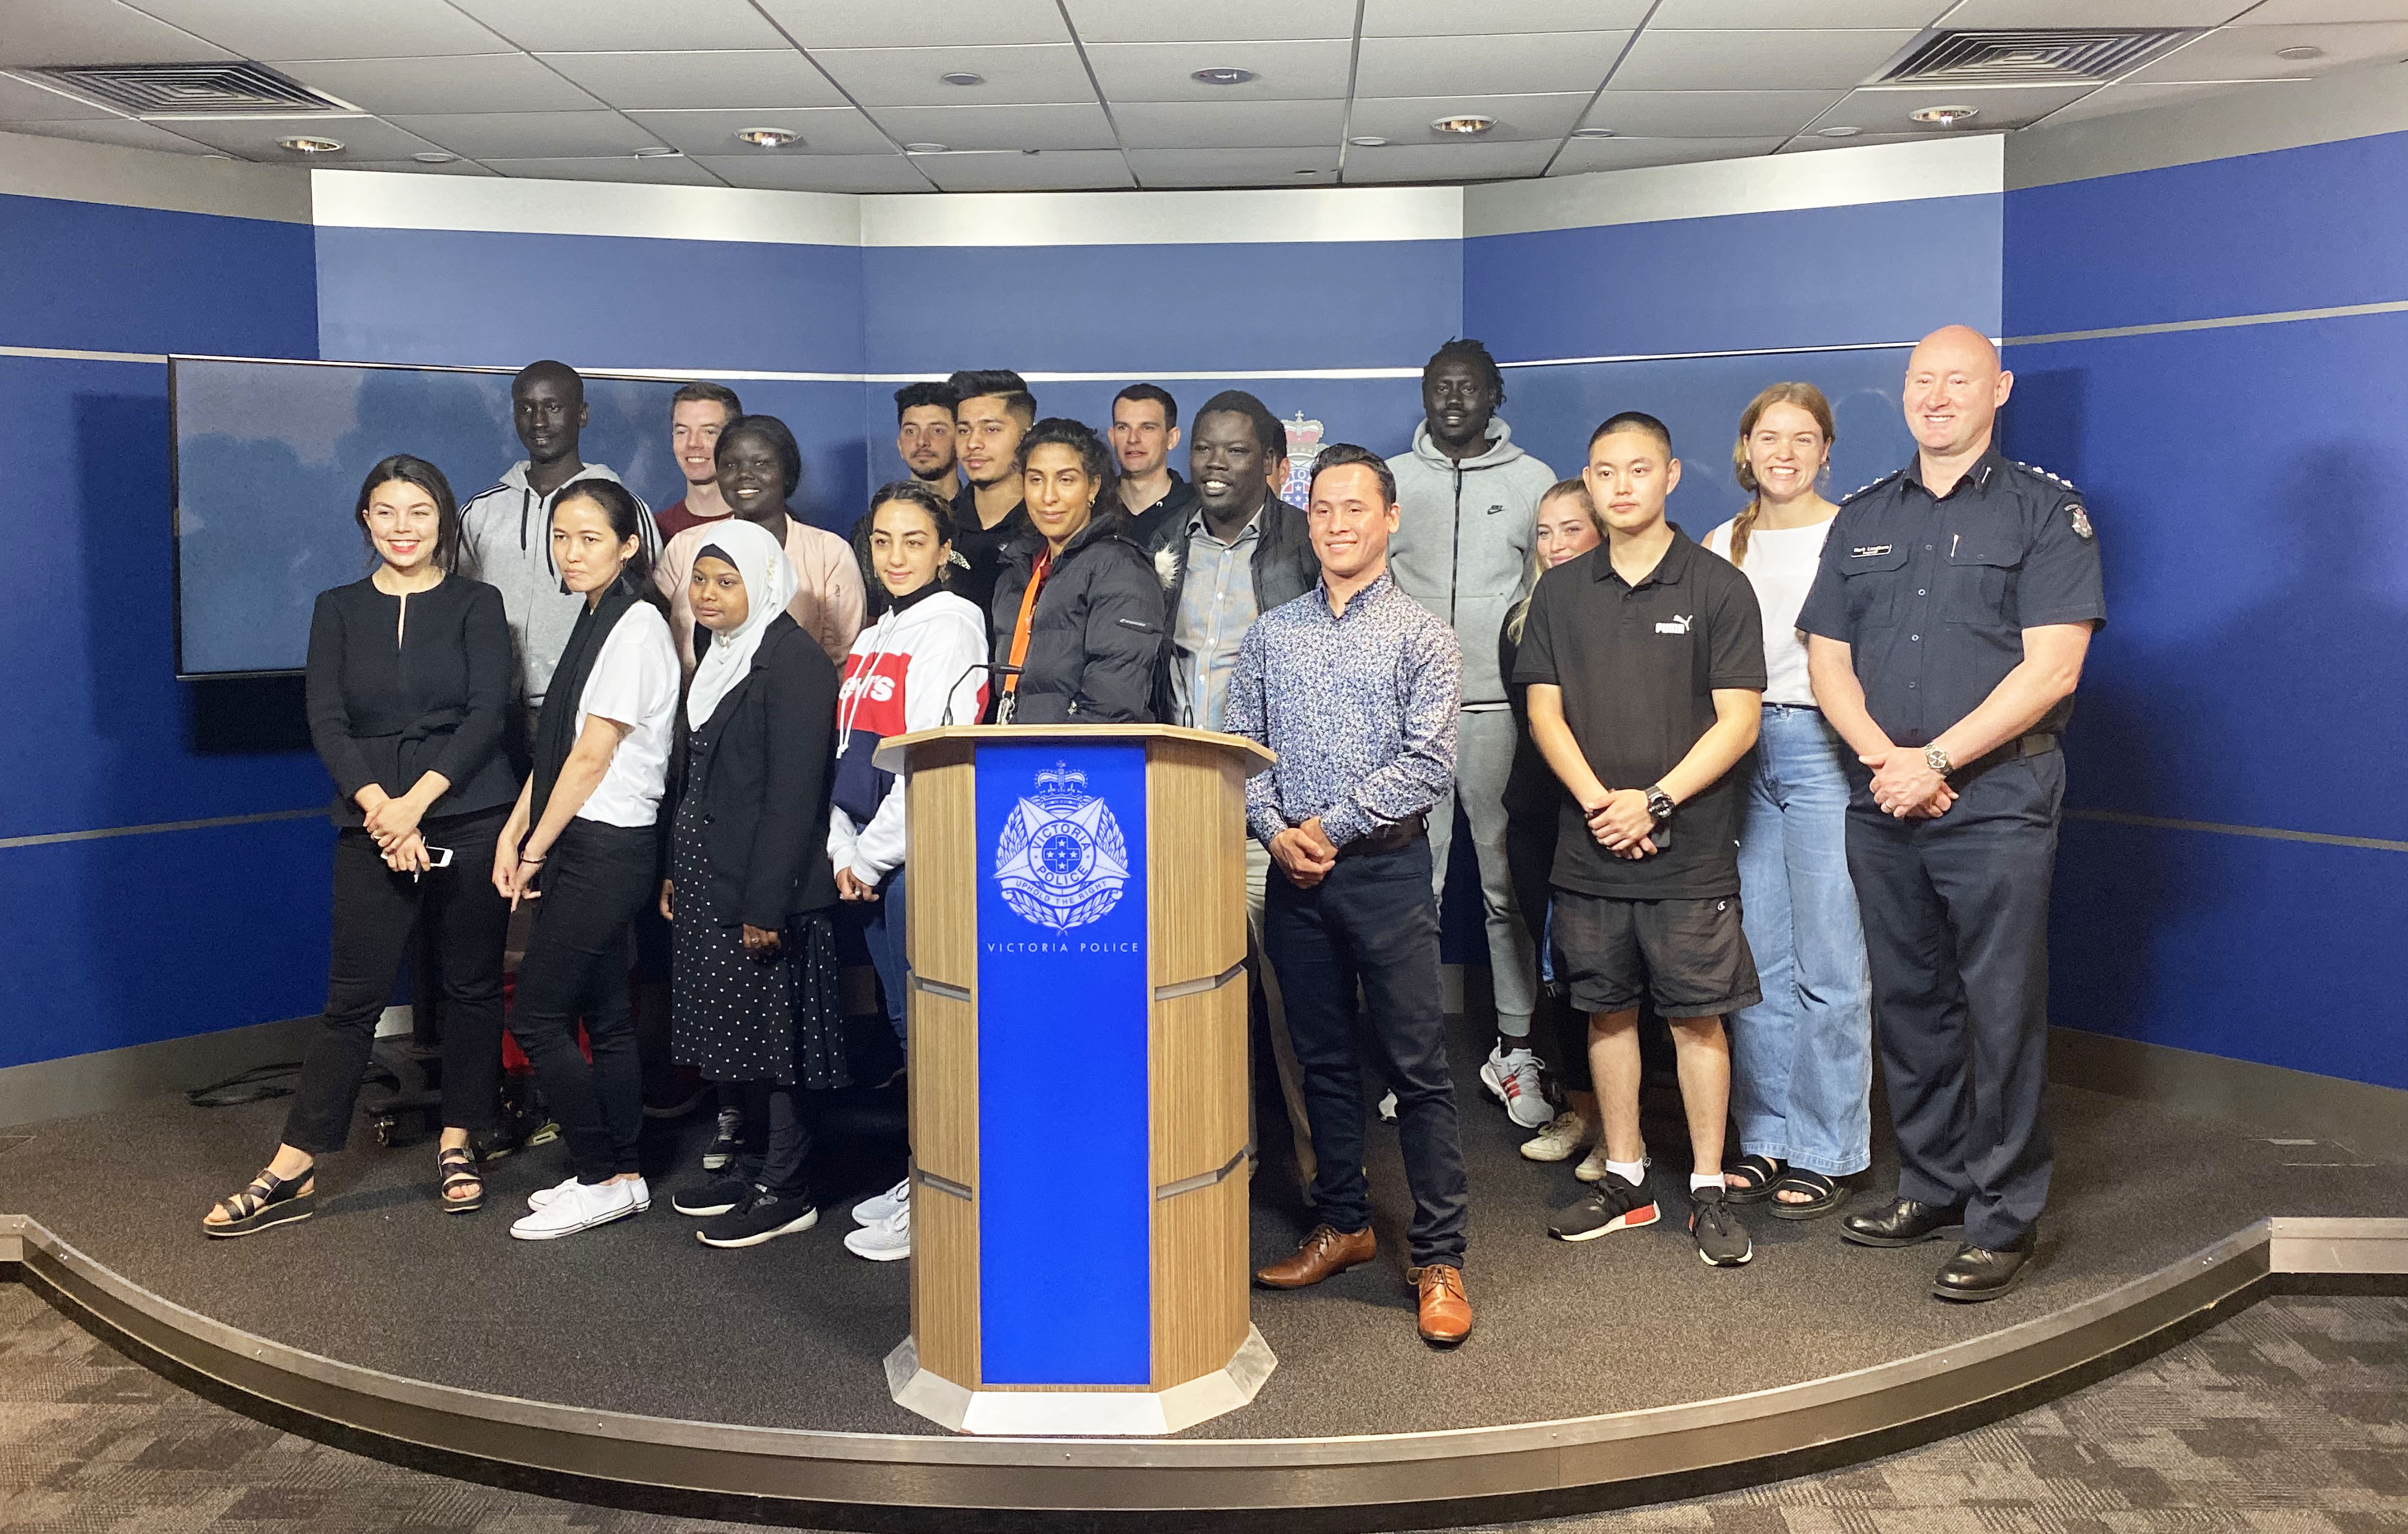 2019 Greater Dandenong Young and Emerging Community Leaders Program Set to Have Positive Impact on the Community